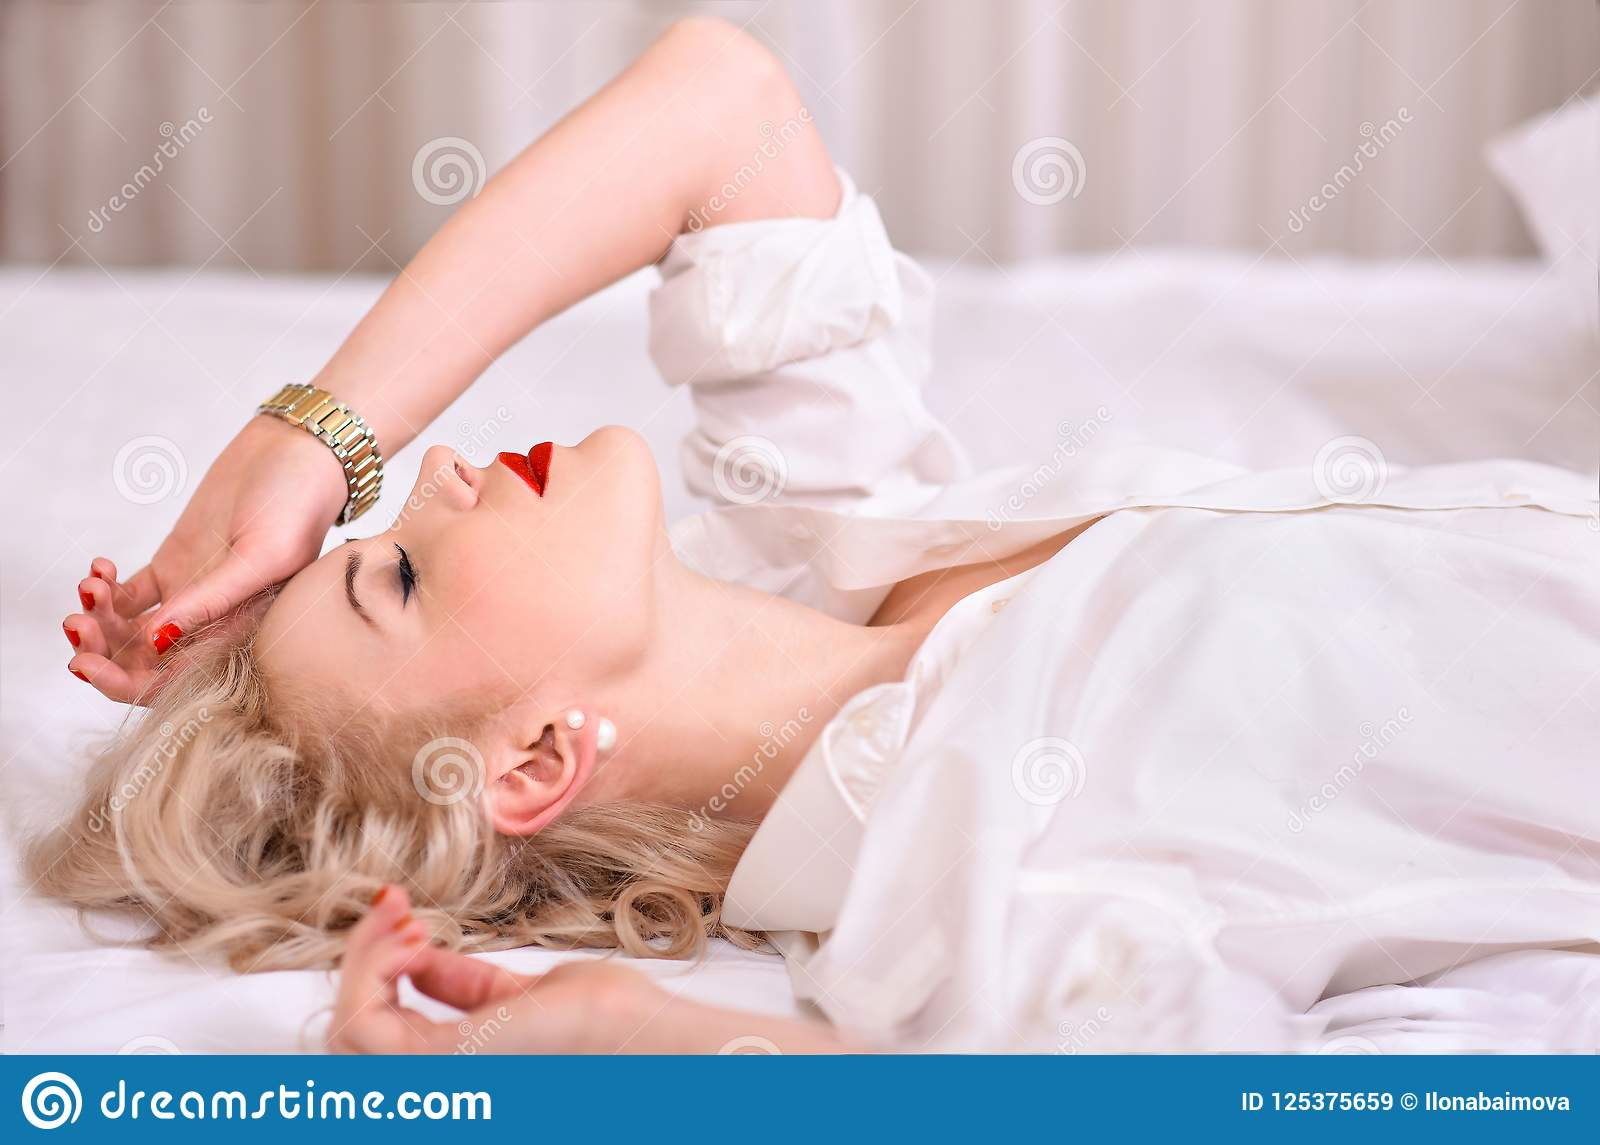 blonde with red lipstick ,in white male shirt, lies on white bed in profile  with eyes closed